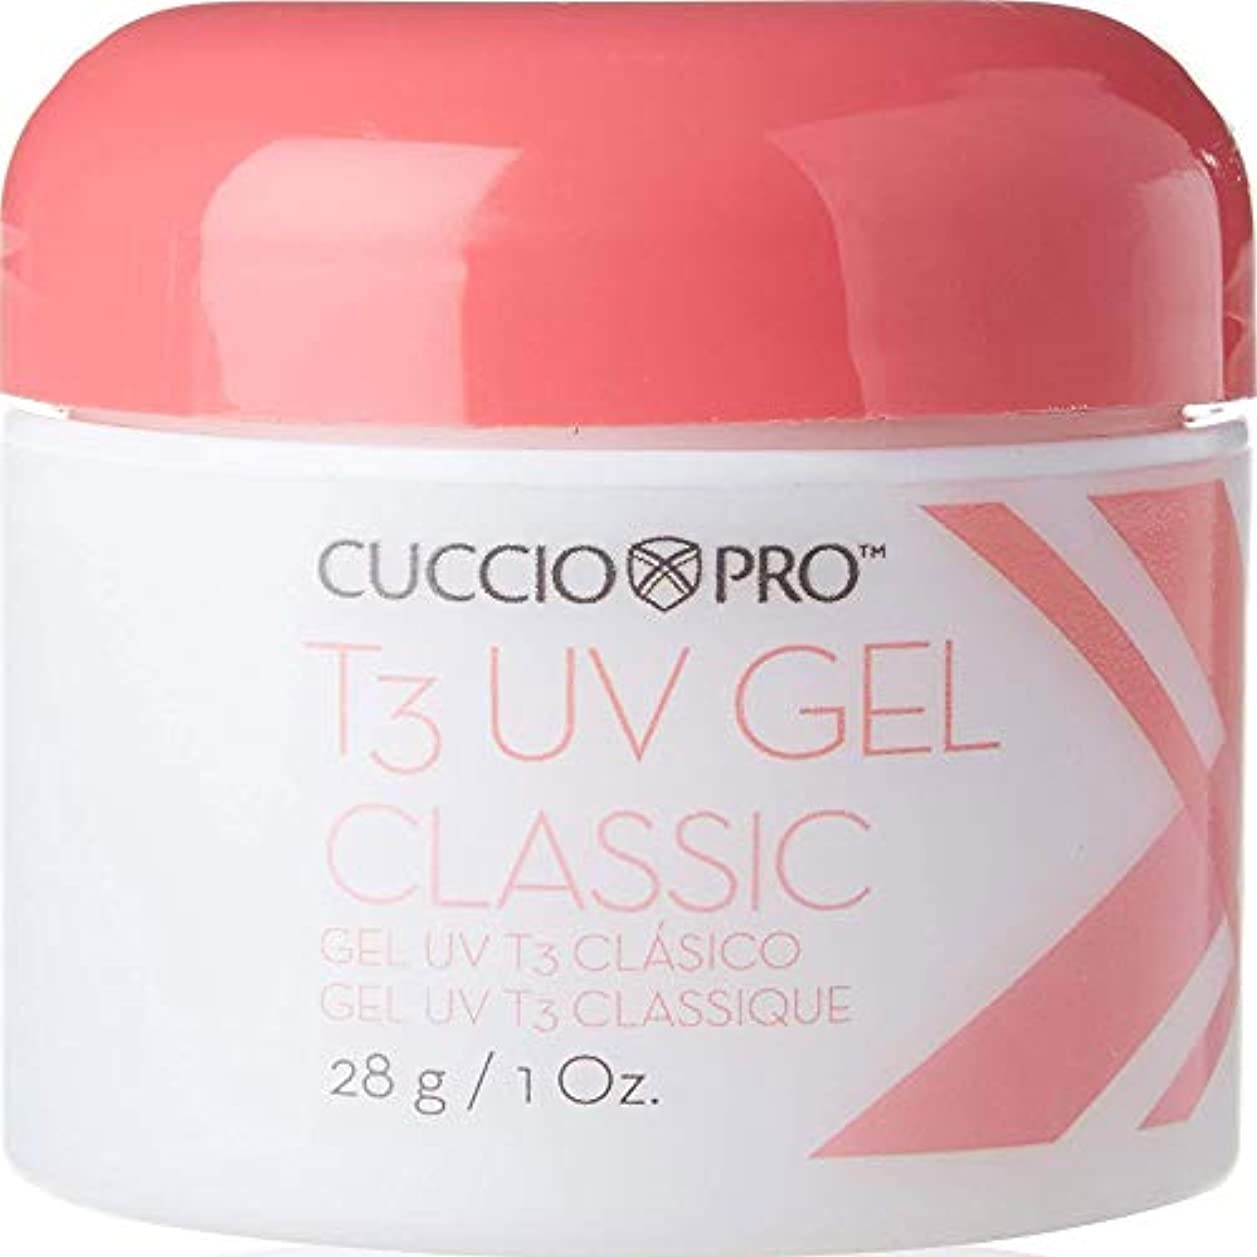 配る散る囲まれたCuccio Pro T3 UV Gel Classic Pink for High Shine Natural and Artificial Nails 28g